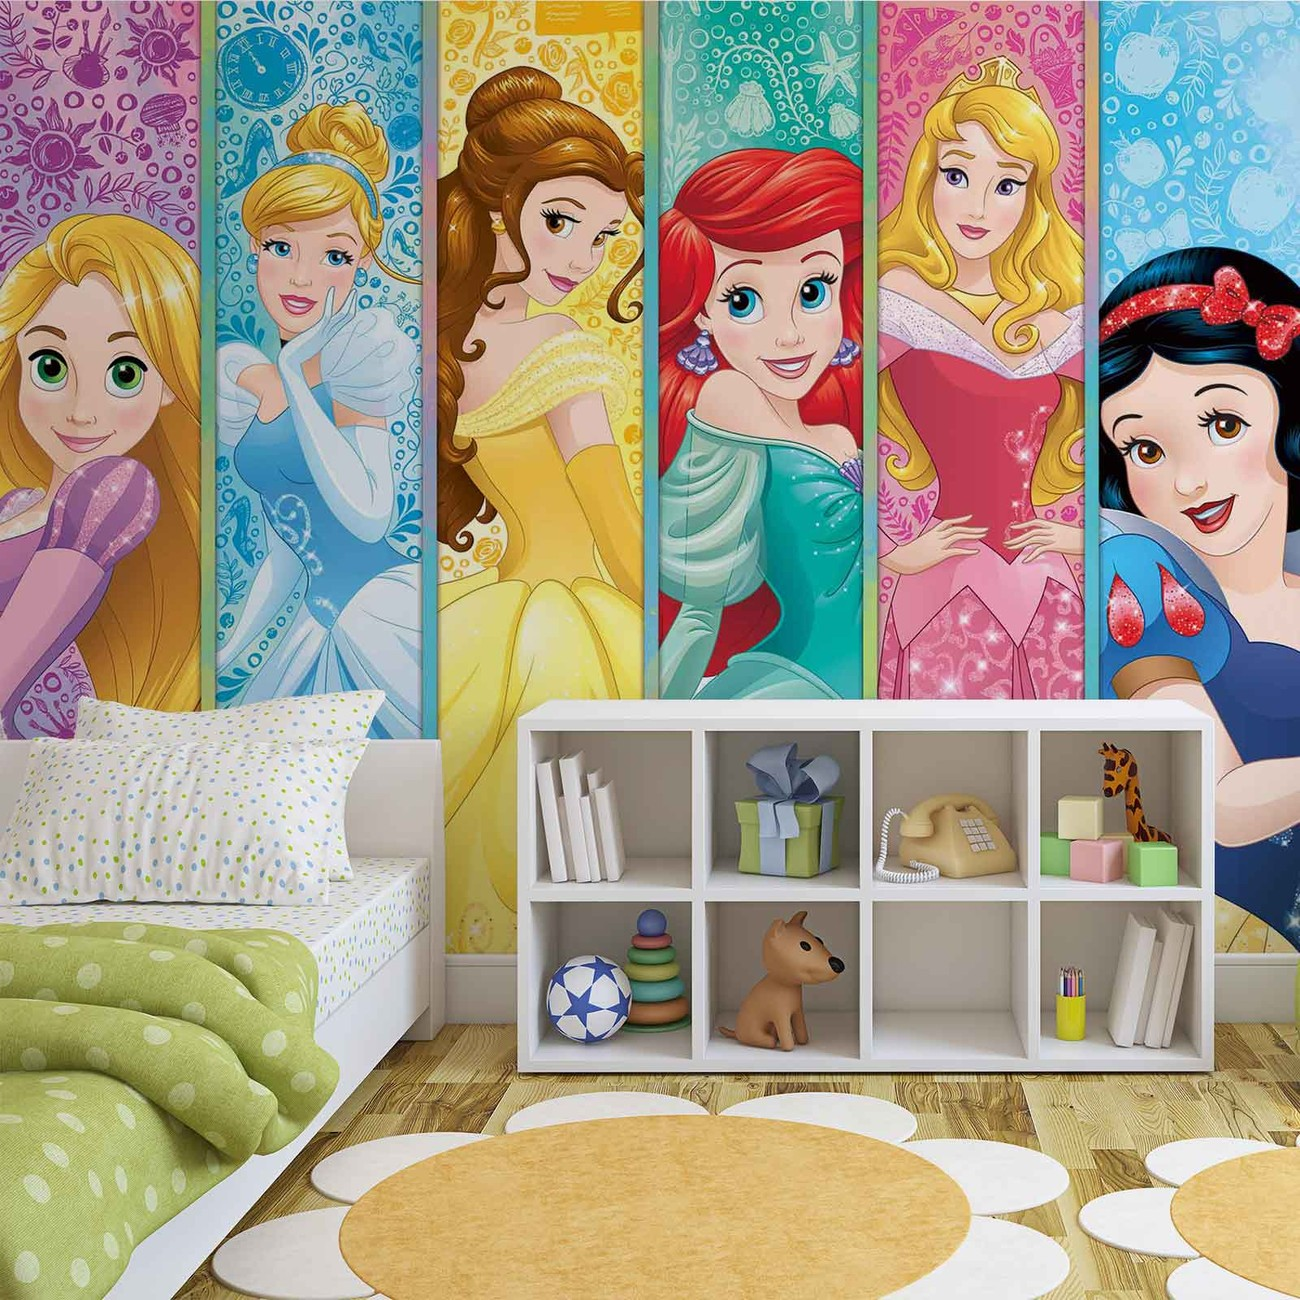 Disney princesses aurora belle ariel wall paper mural for Disney princess wall mural tesco